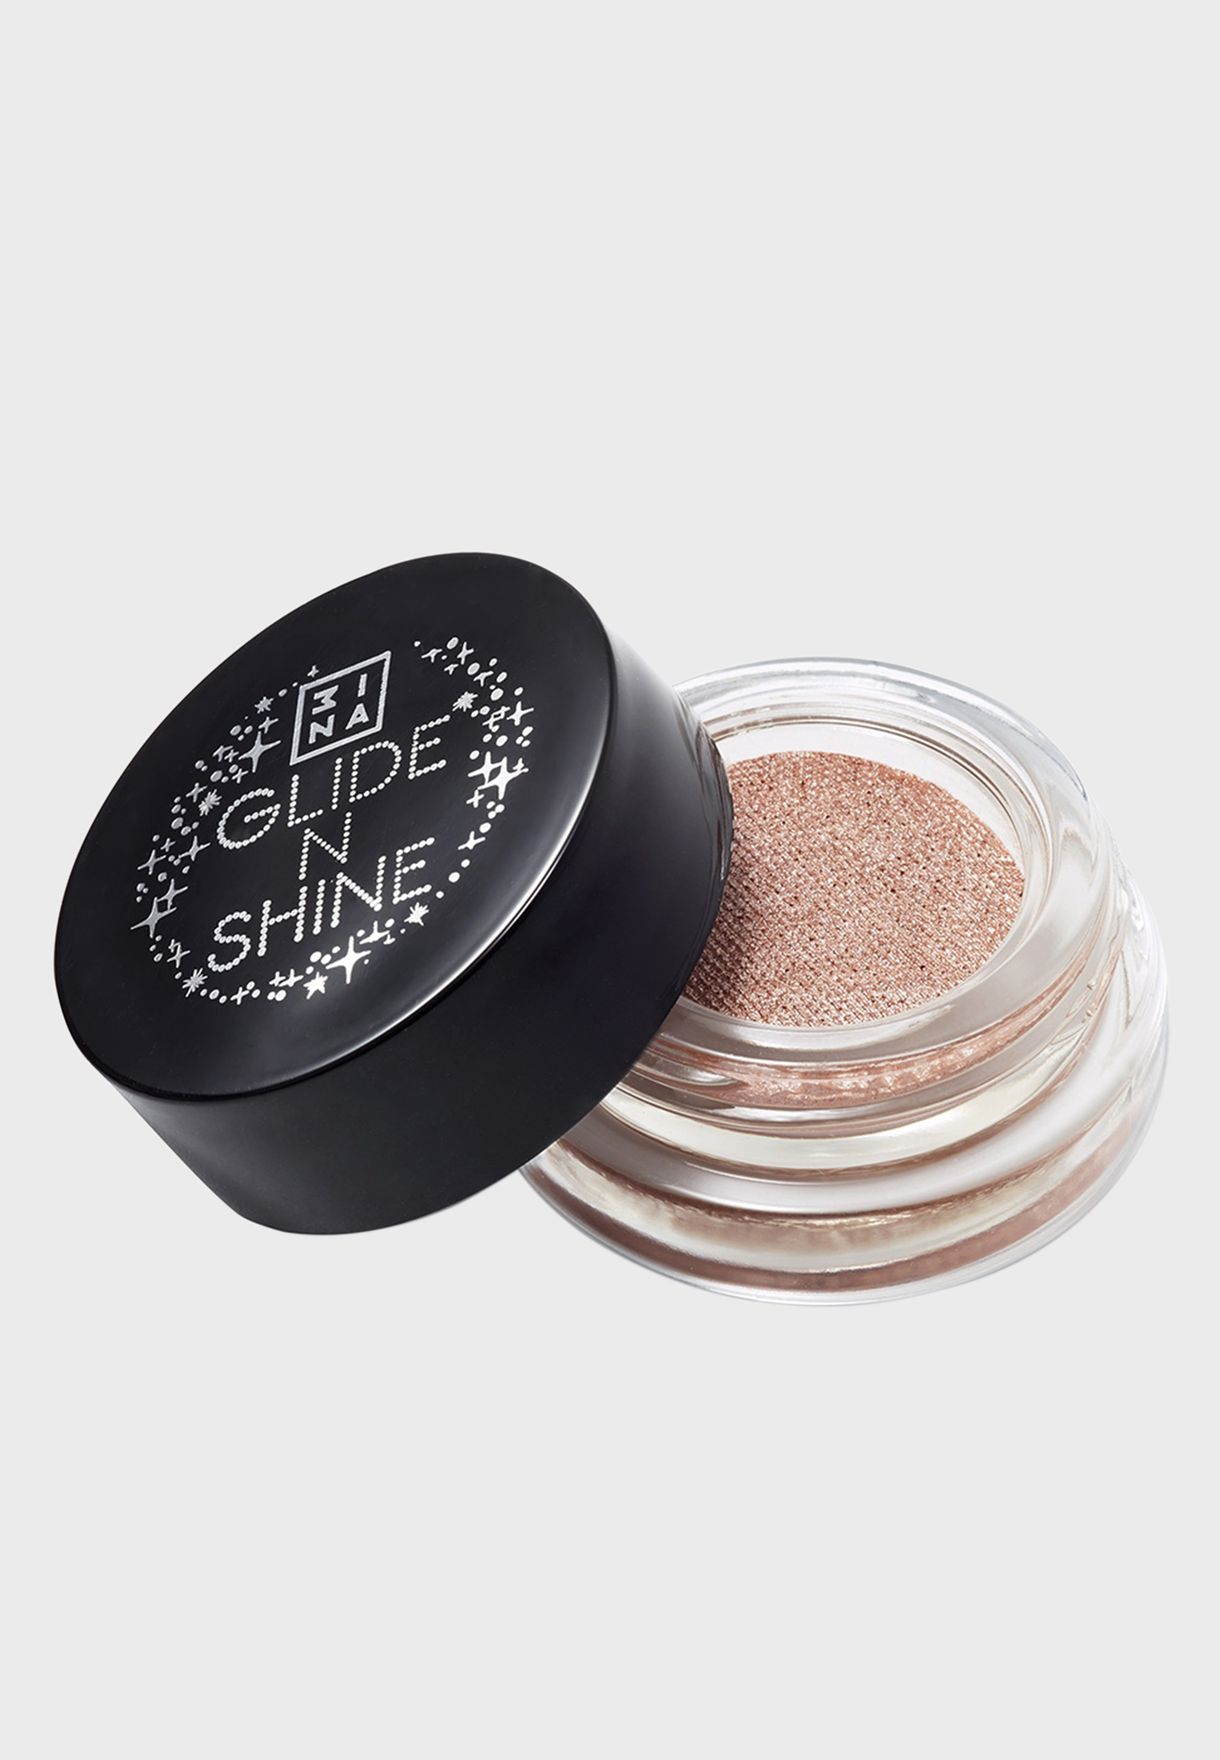 The Glide and Shine Eyeshadow - Golden Hit